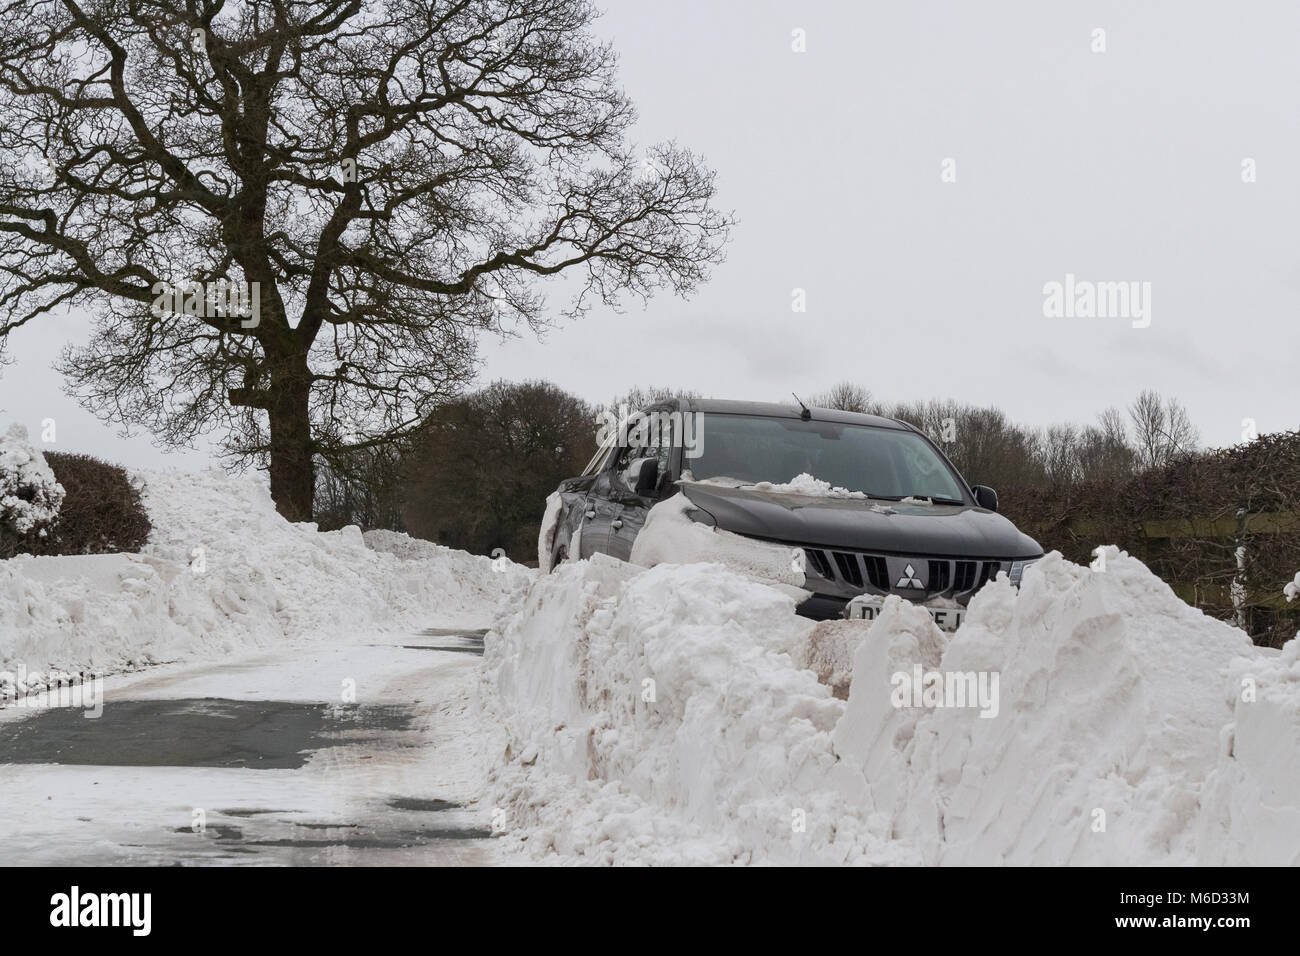 Uttoxeter, Staffordshire, UK. 02nd Mar, 2018. UK Weather: A Mitsubishi 4x4 is stranded and stuck in a huge snowdrift - Stock Image